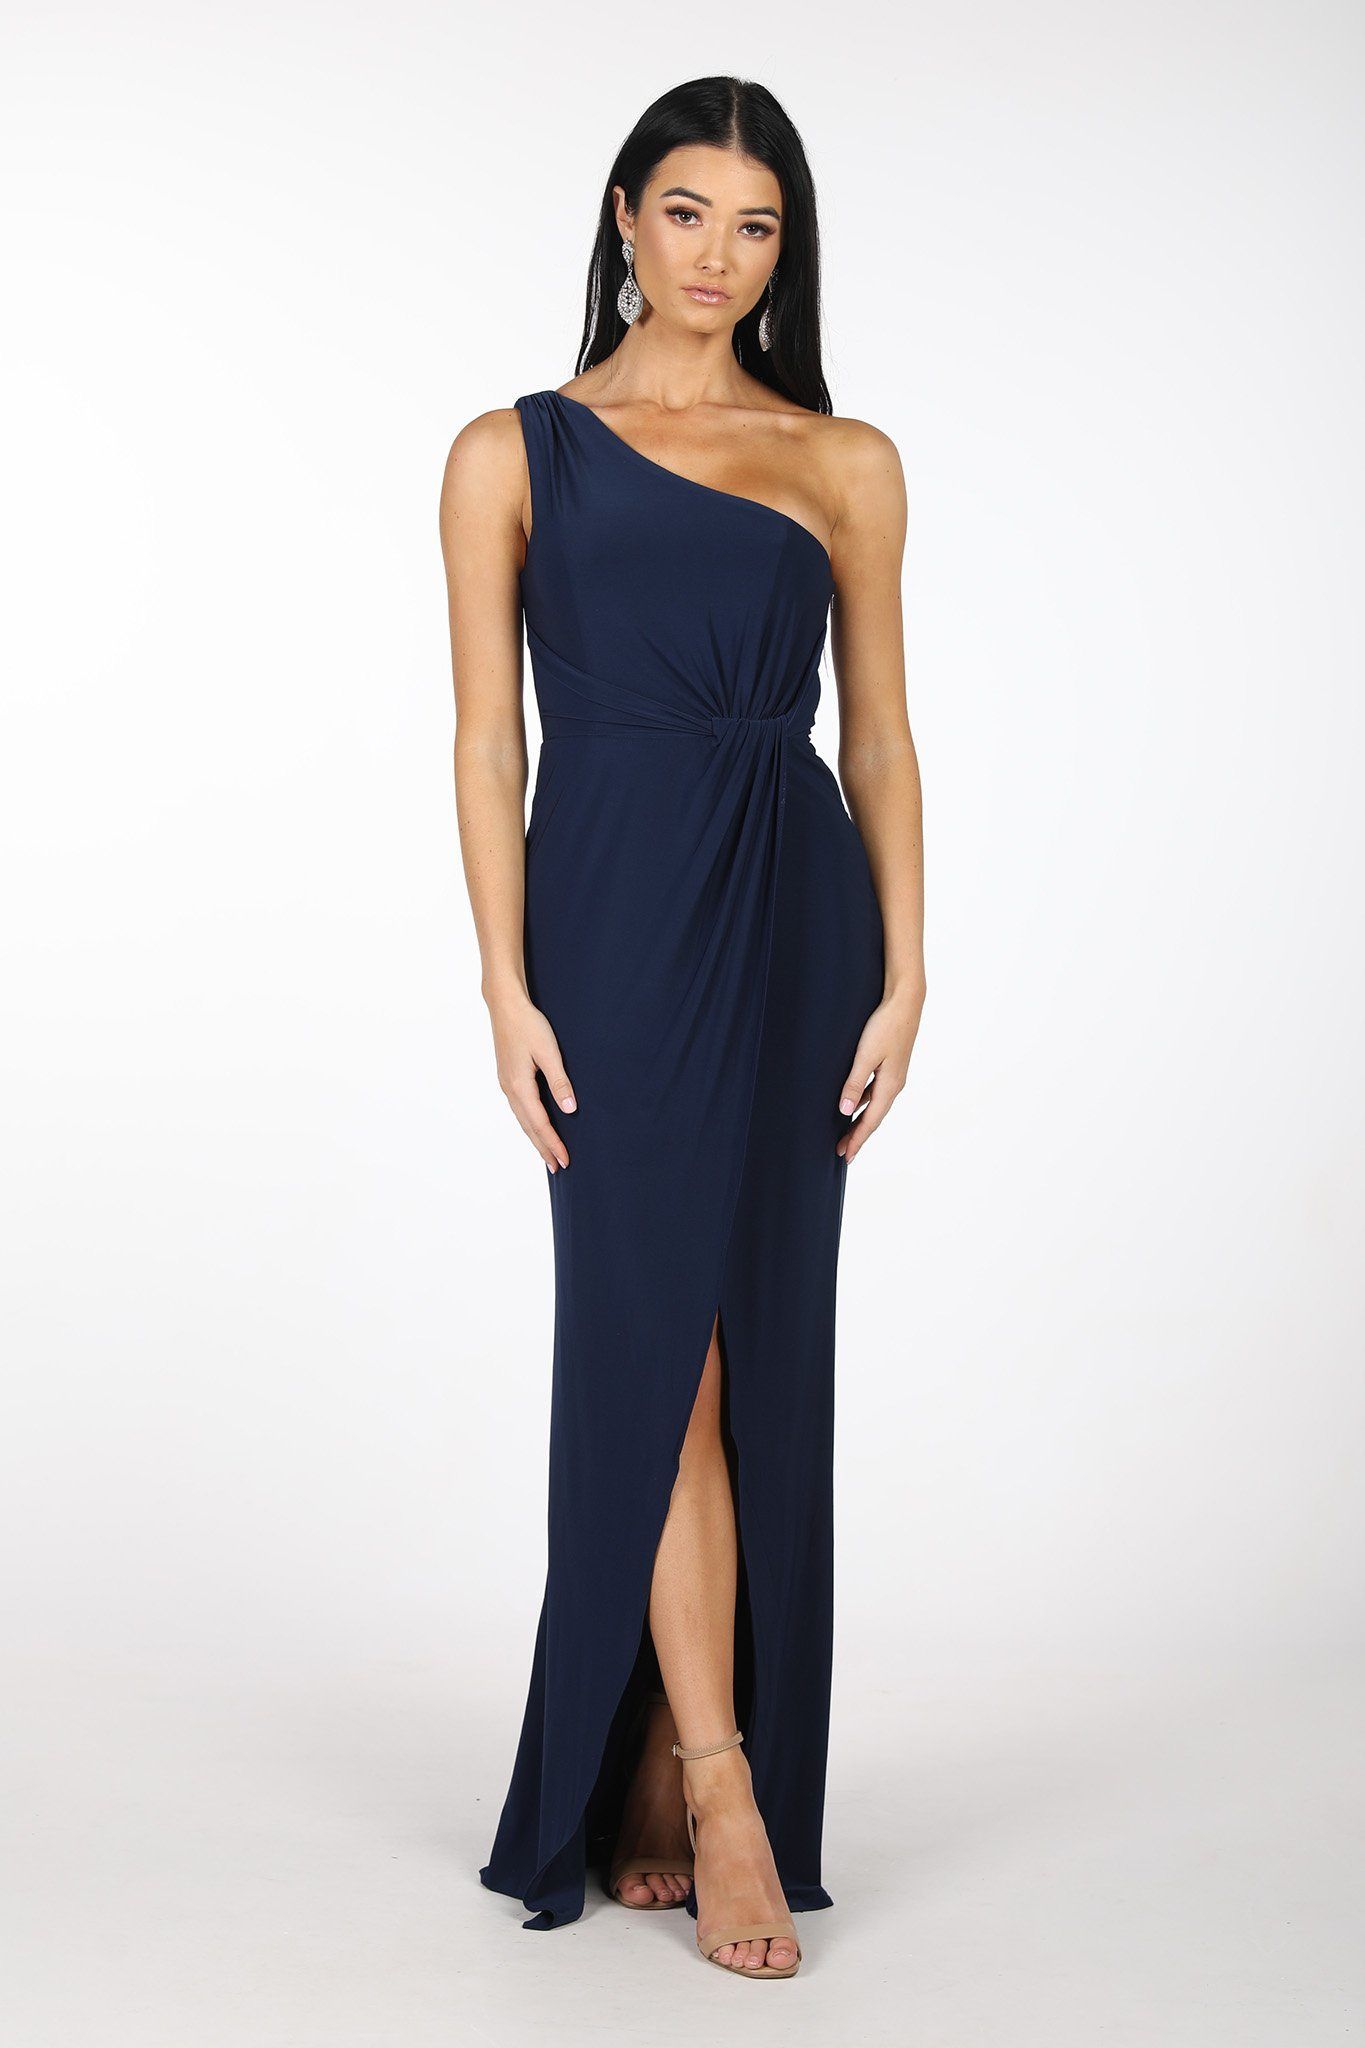 Maxi-Length Dress with Asymmetrical One Shoulder Neckline, Ruched Waist, Above Knee High Slit, and a Column Styled Silhouette in Navy Colour